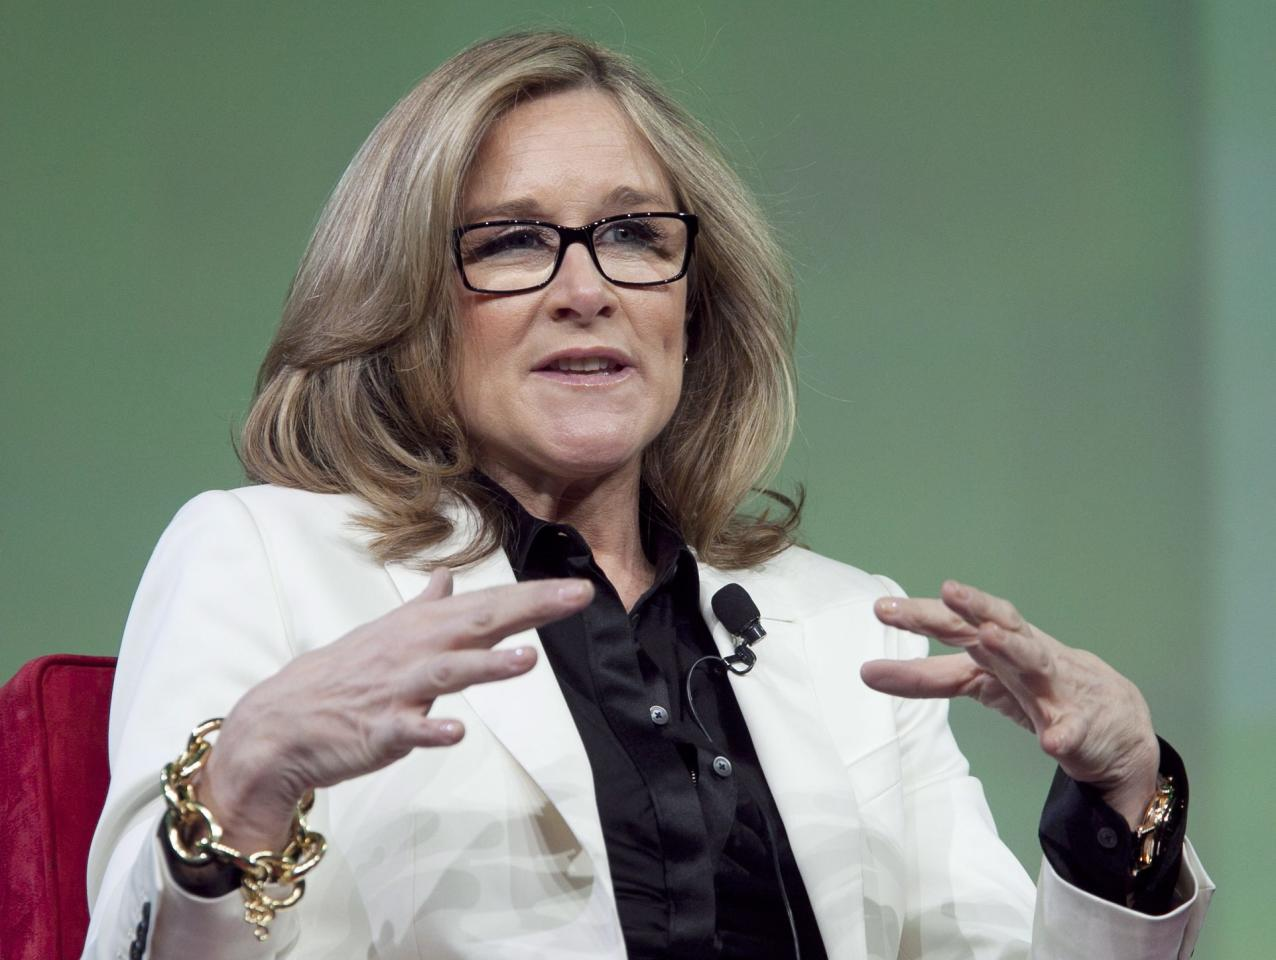 <p>No. 13: Angela Ahrendts, SVP, Retail, Apple<br />The former Burberry head was poached by Tim Cook to join Apple in 2014, and the 51-year-old is responsible for the tech giant's largest store redesign in 15 years, <em>Fortune</em> reports. She's Apple's highest-ranking woman and oversees 60,000 retail employees and shapes the experience of over 1 million daily in-store shoppers.<br />Company Financials (2016, or most recently completed fiscal year)<br />Revenues ($M) 215639<br />Profits ($M) 45687<br />Market Value as of 9/14/17 ($M) 817552.3<br />(Canadian Press) </p>